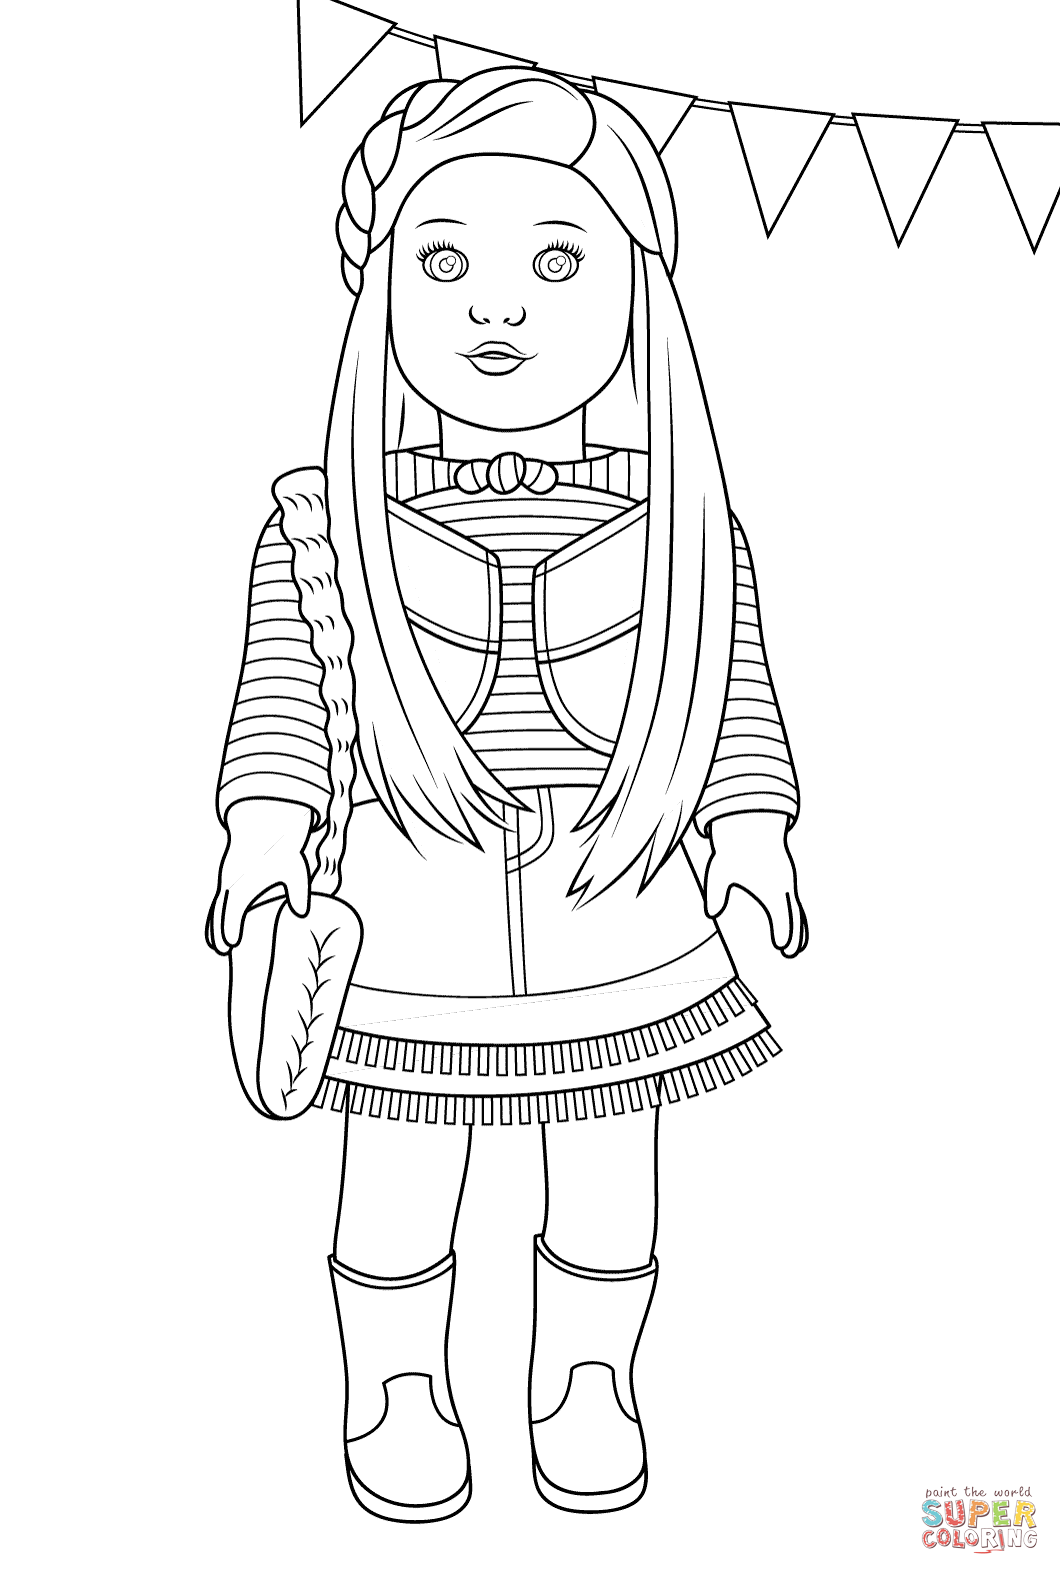 free printable american girl doll coloring pages american girl doll coloring pages girl free doll pages printable american coloring